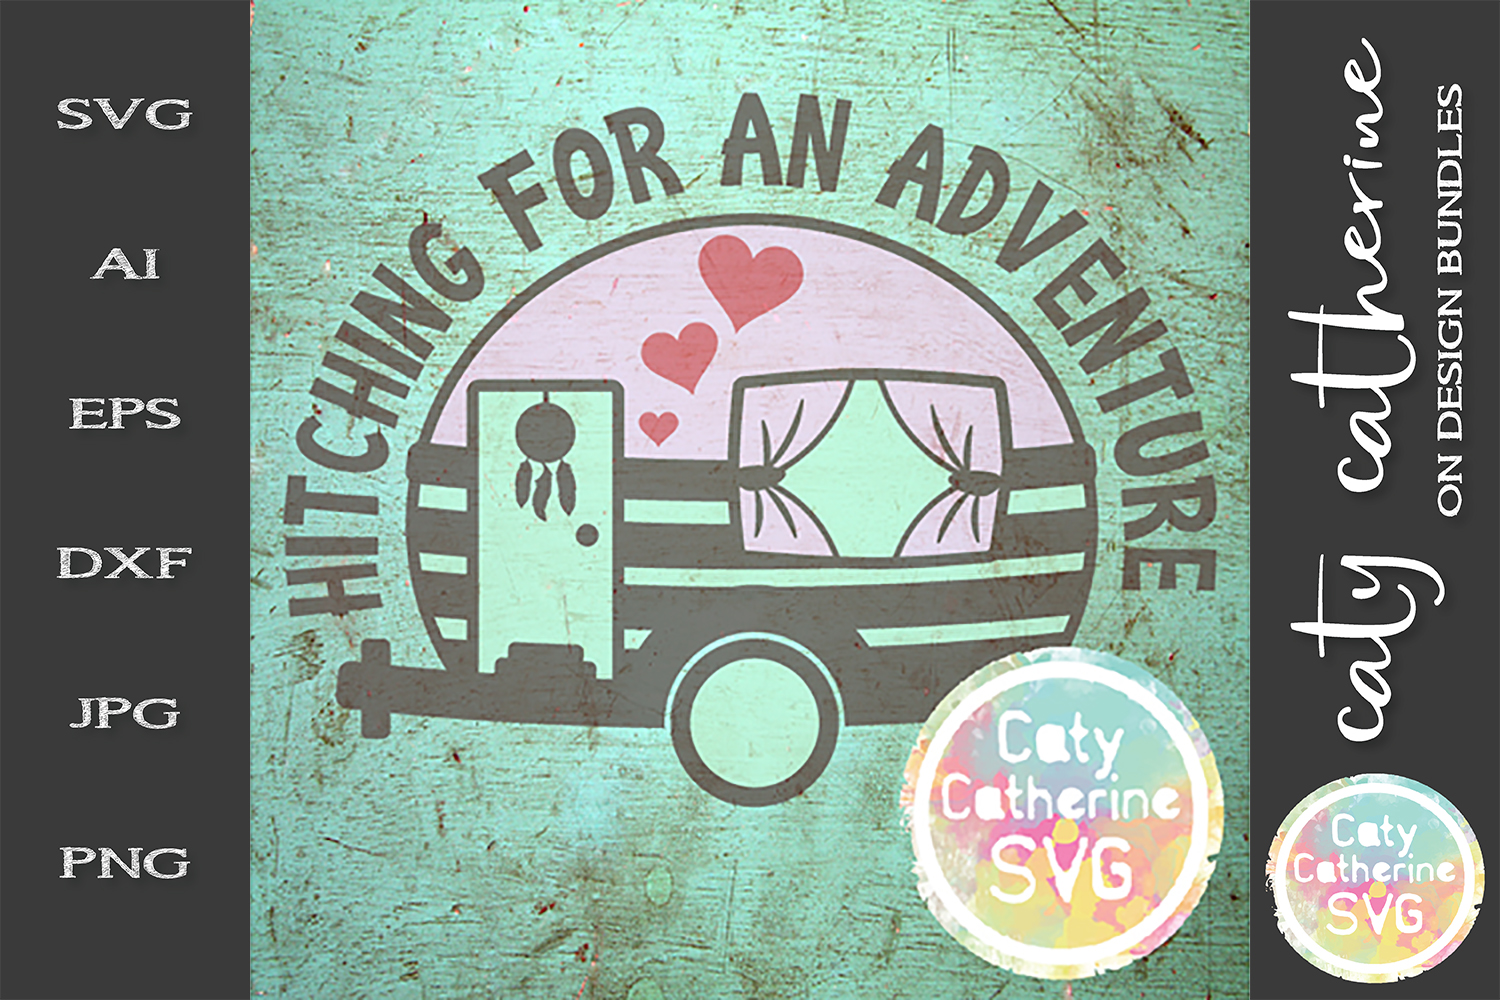 Hitching For An Adventure Caravan Camping SVG Cut File example image 1